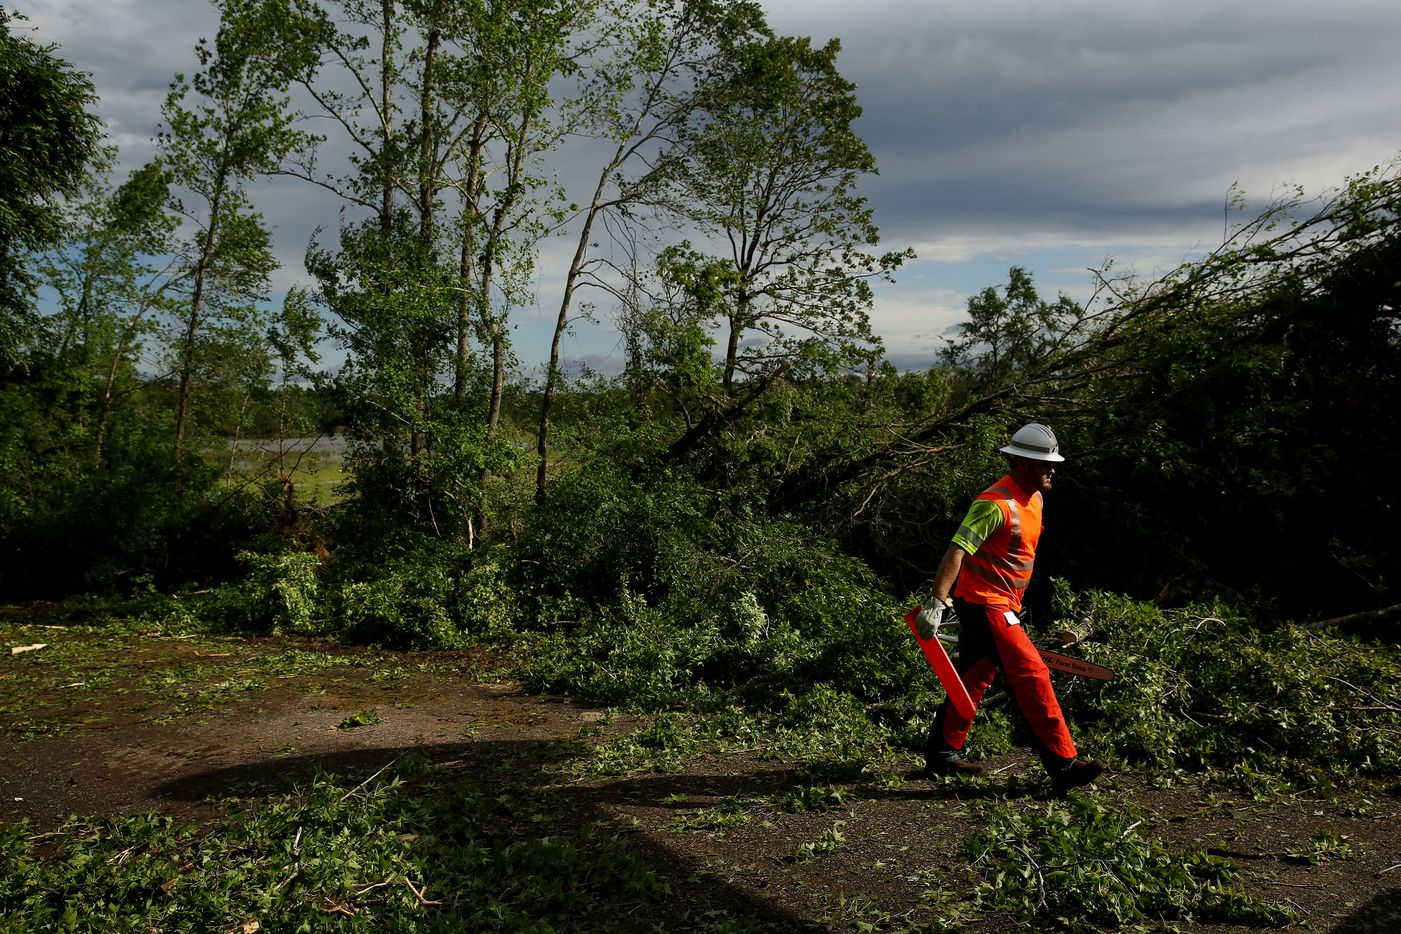 Ethan O'Donnell, of a Texas Department of Transportation crew out of Mineola, prepares to use a chainsaw to clear debris on VZ County Road 1106. (Andy Jacobsohn/The Dallas Morning News)